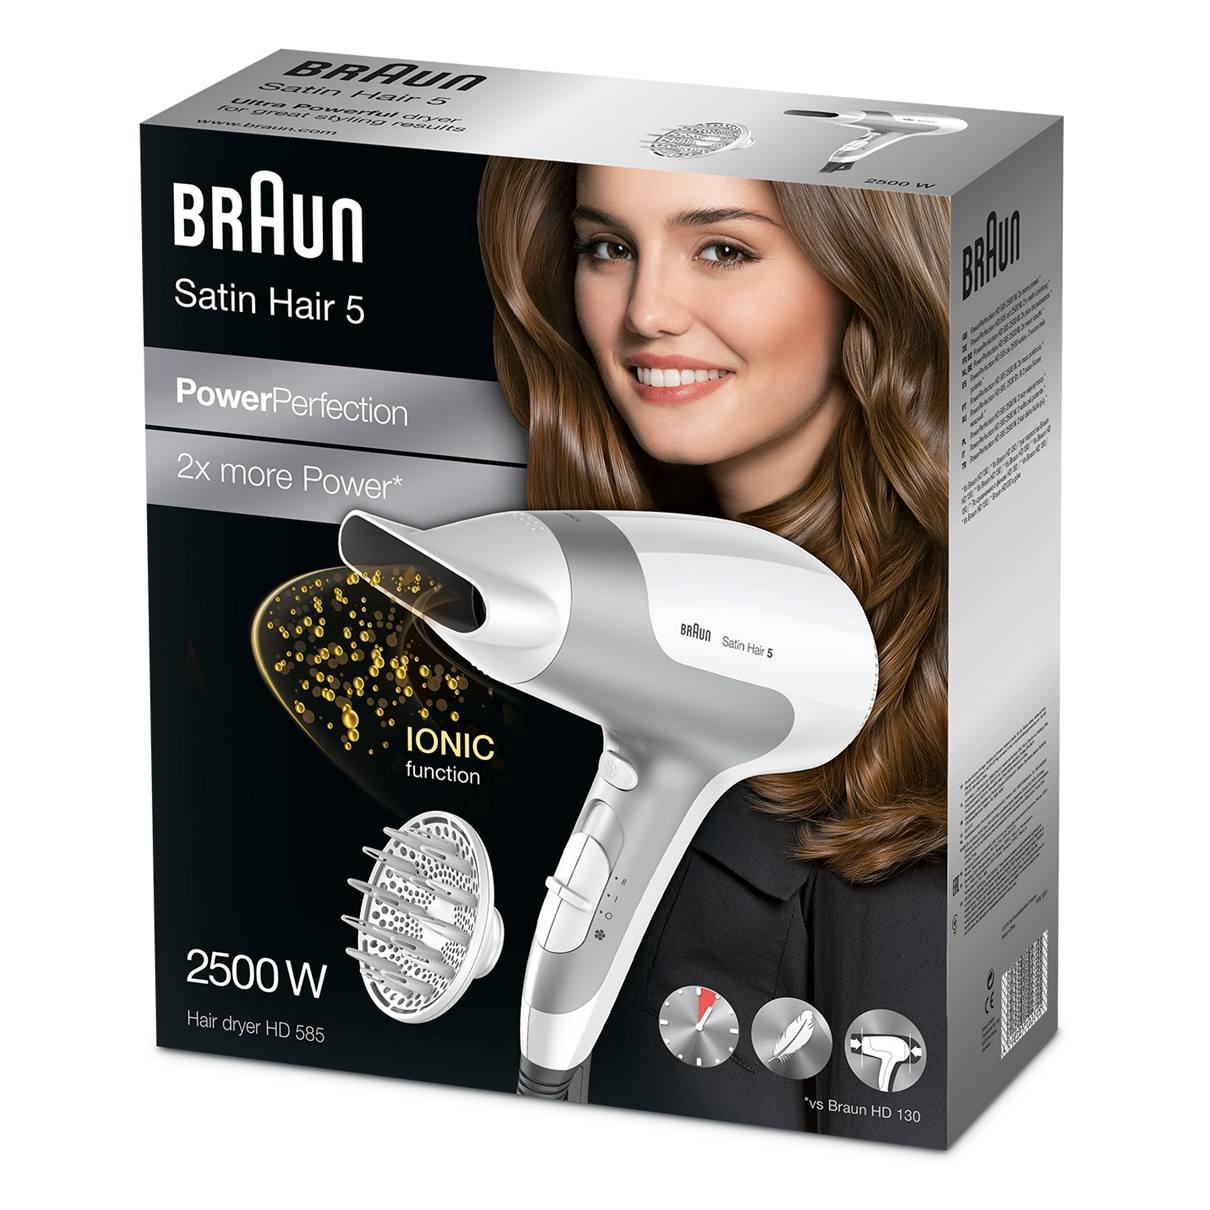 Uscător Braun Satin Hair 5 PowerPerfection HD585 – Ionic.